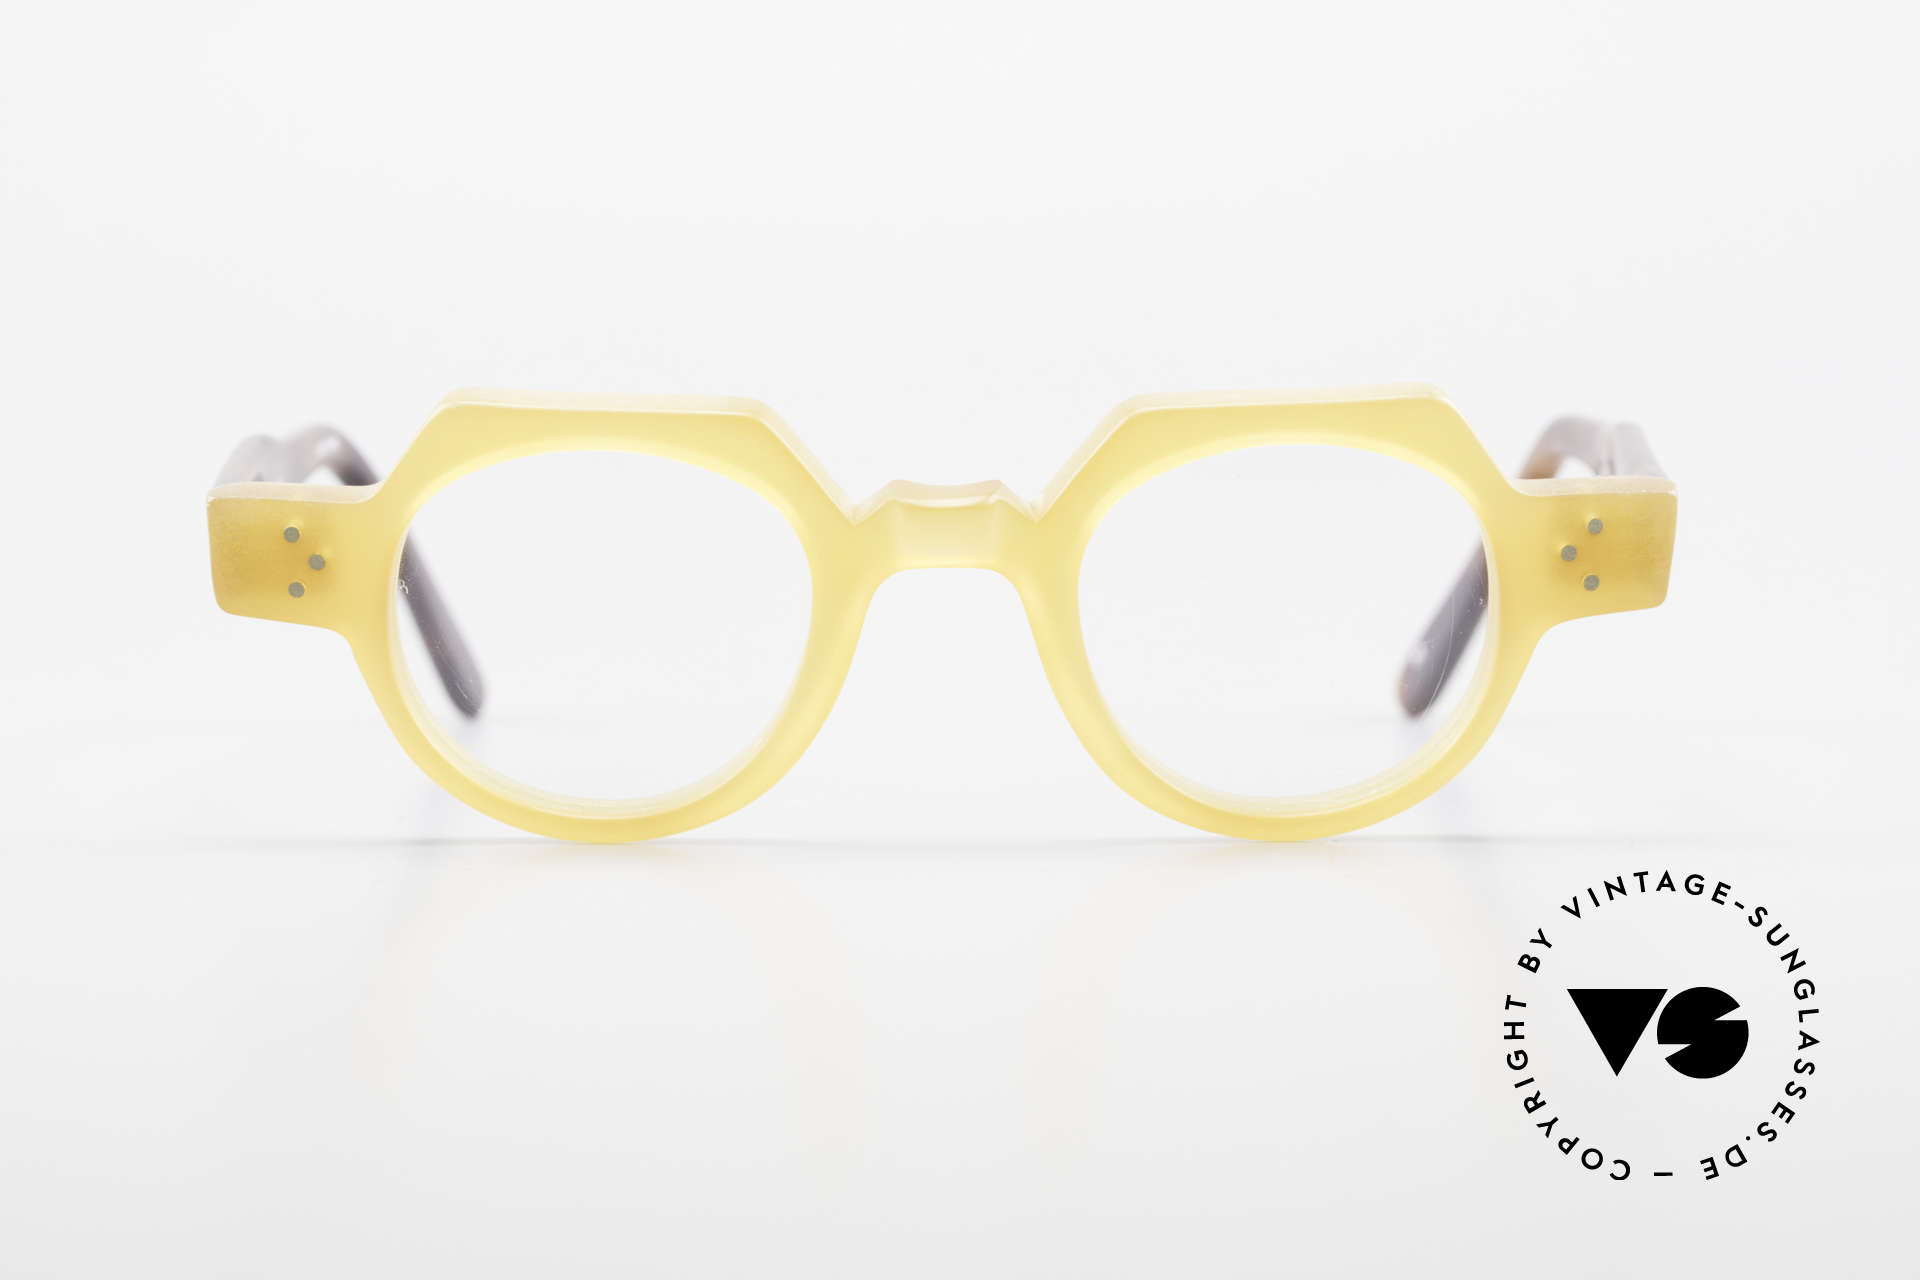 Anne Et Valentin Groucho Old True Vintage 80's Glasses, the couple Anne (artist) and Valentin (optician), Made for Men and Women